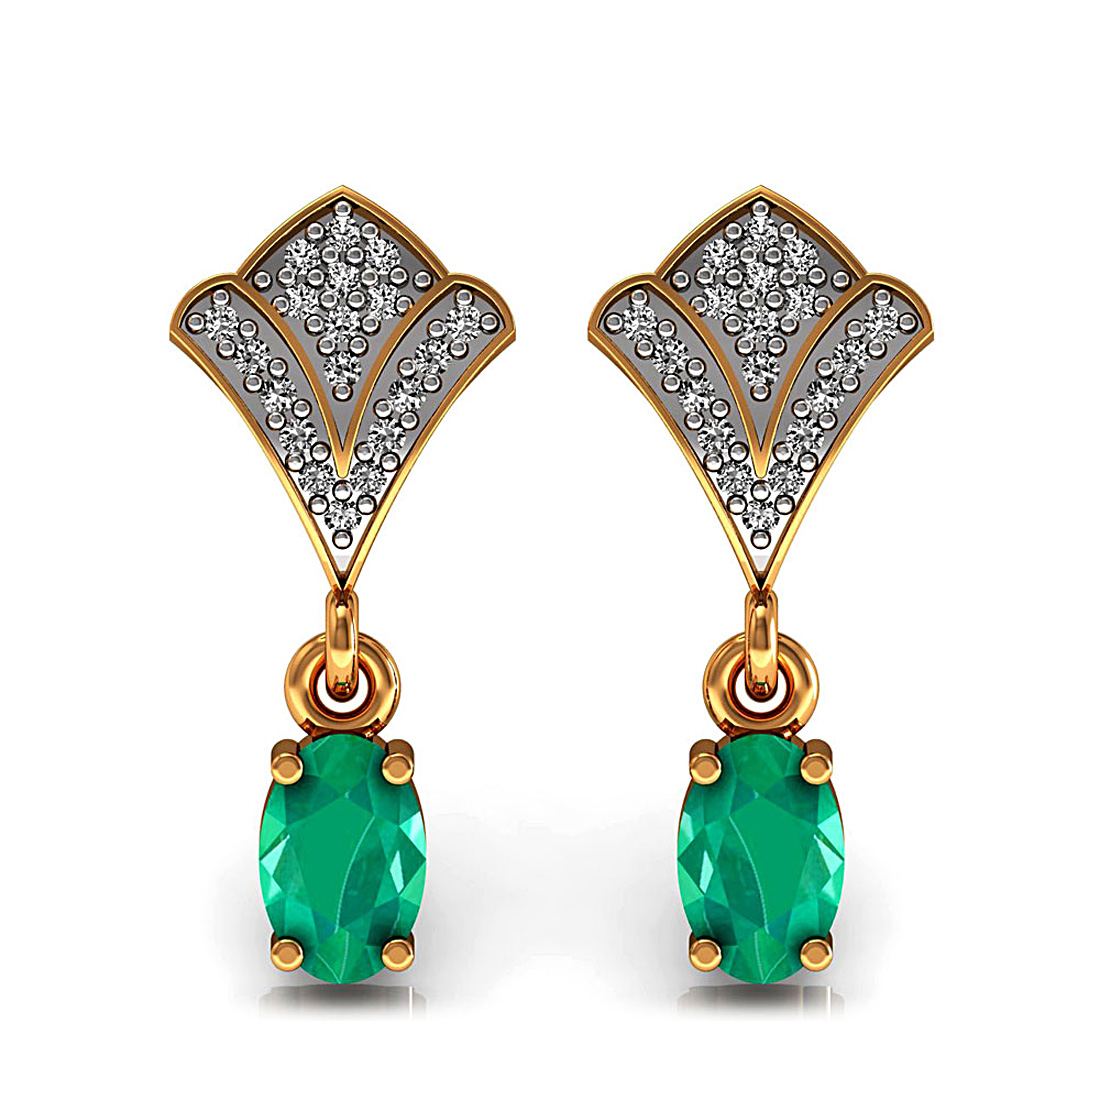 Natural diamond drop stud earrings made in 18k solid gold & emerald